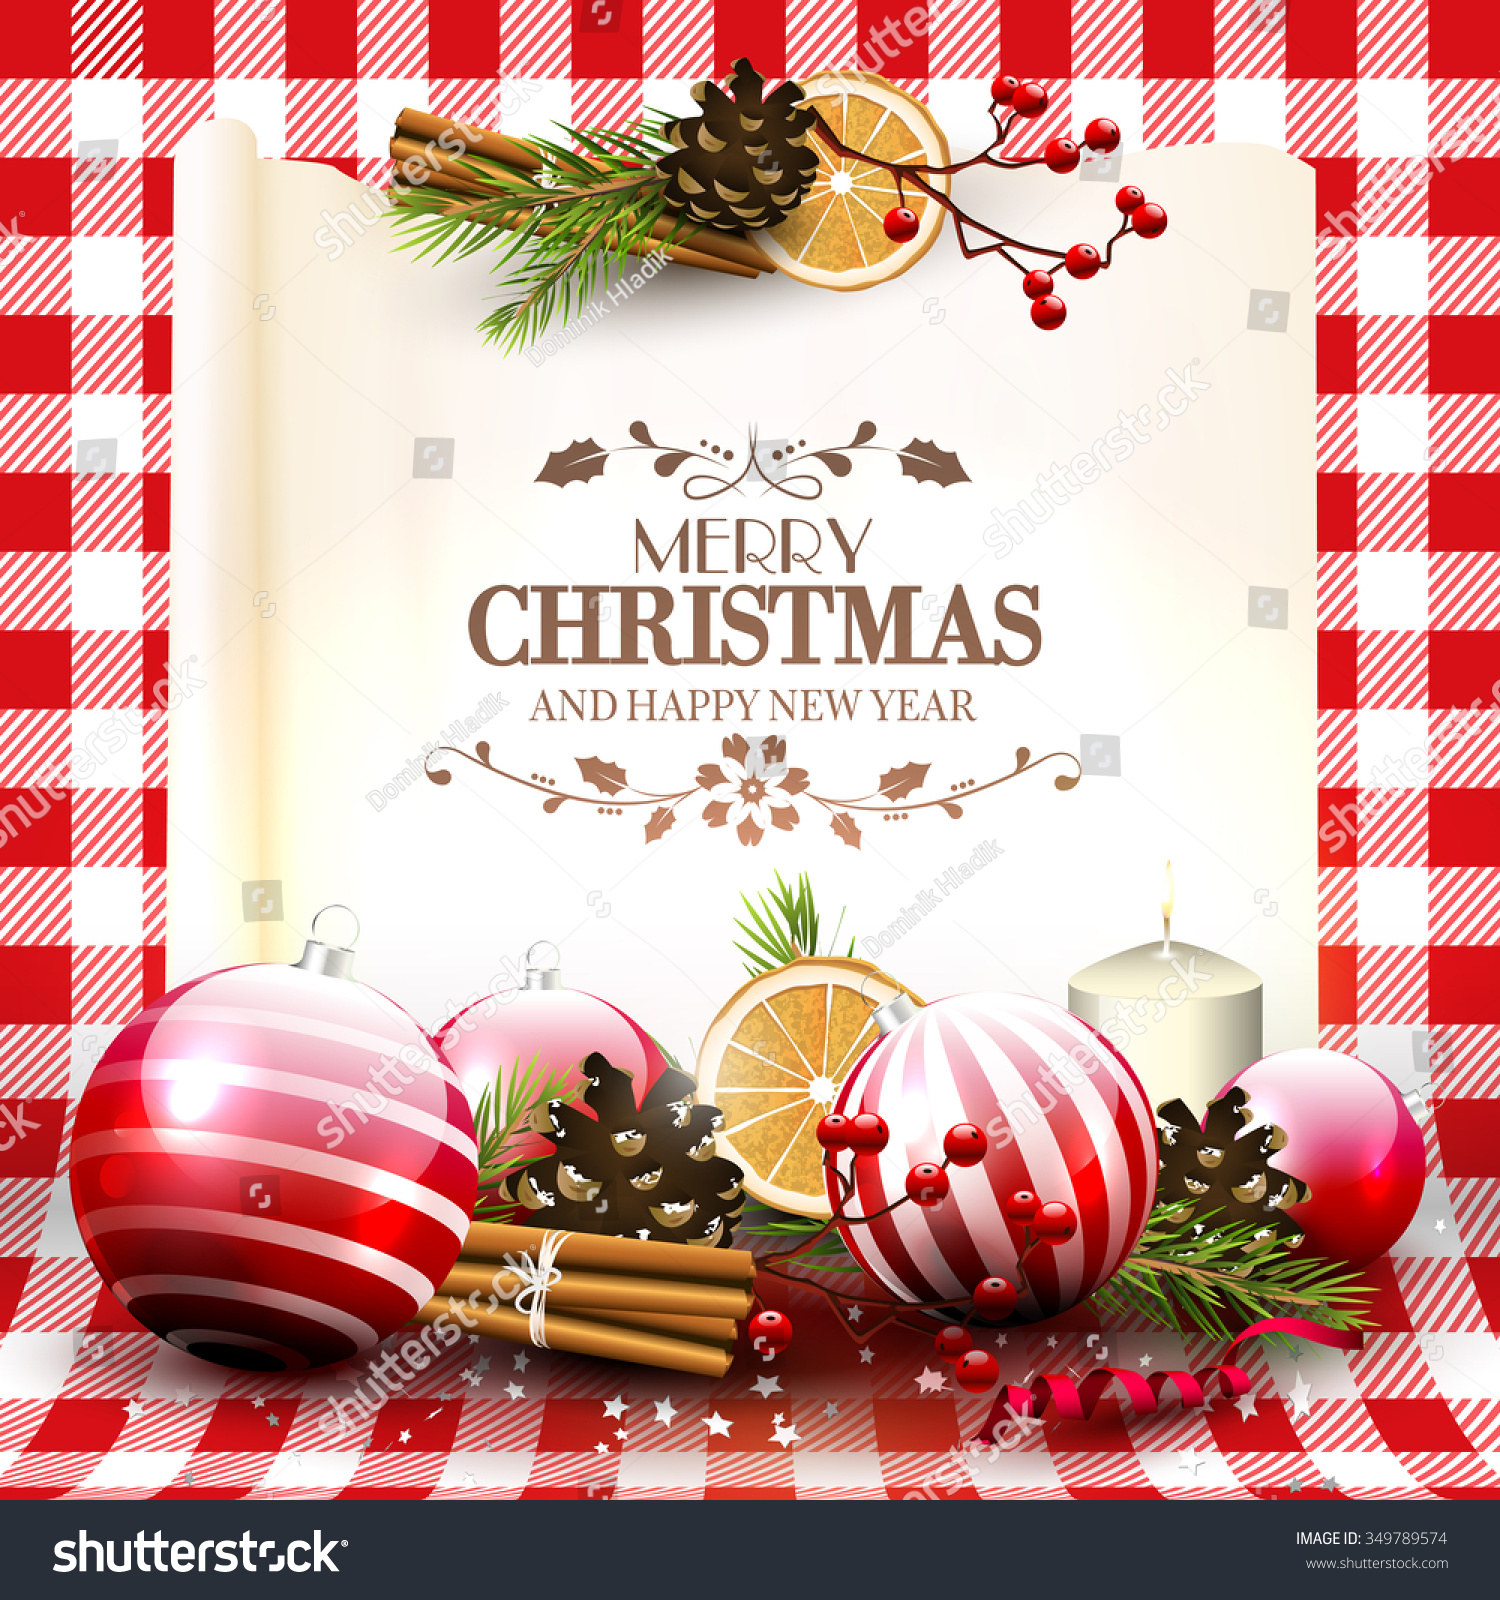 Traditional Christmas Greeting Card Decorations Old Stock Vector ...